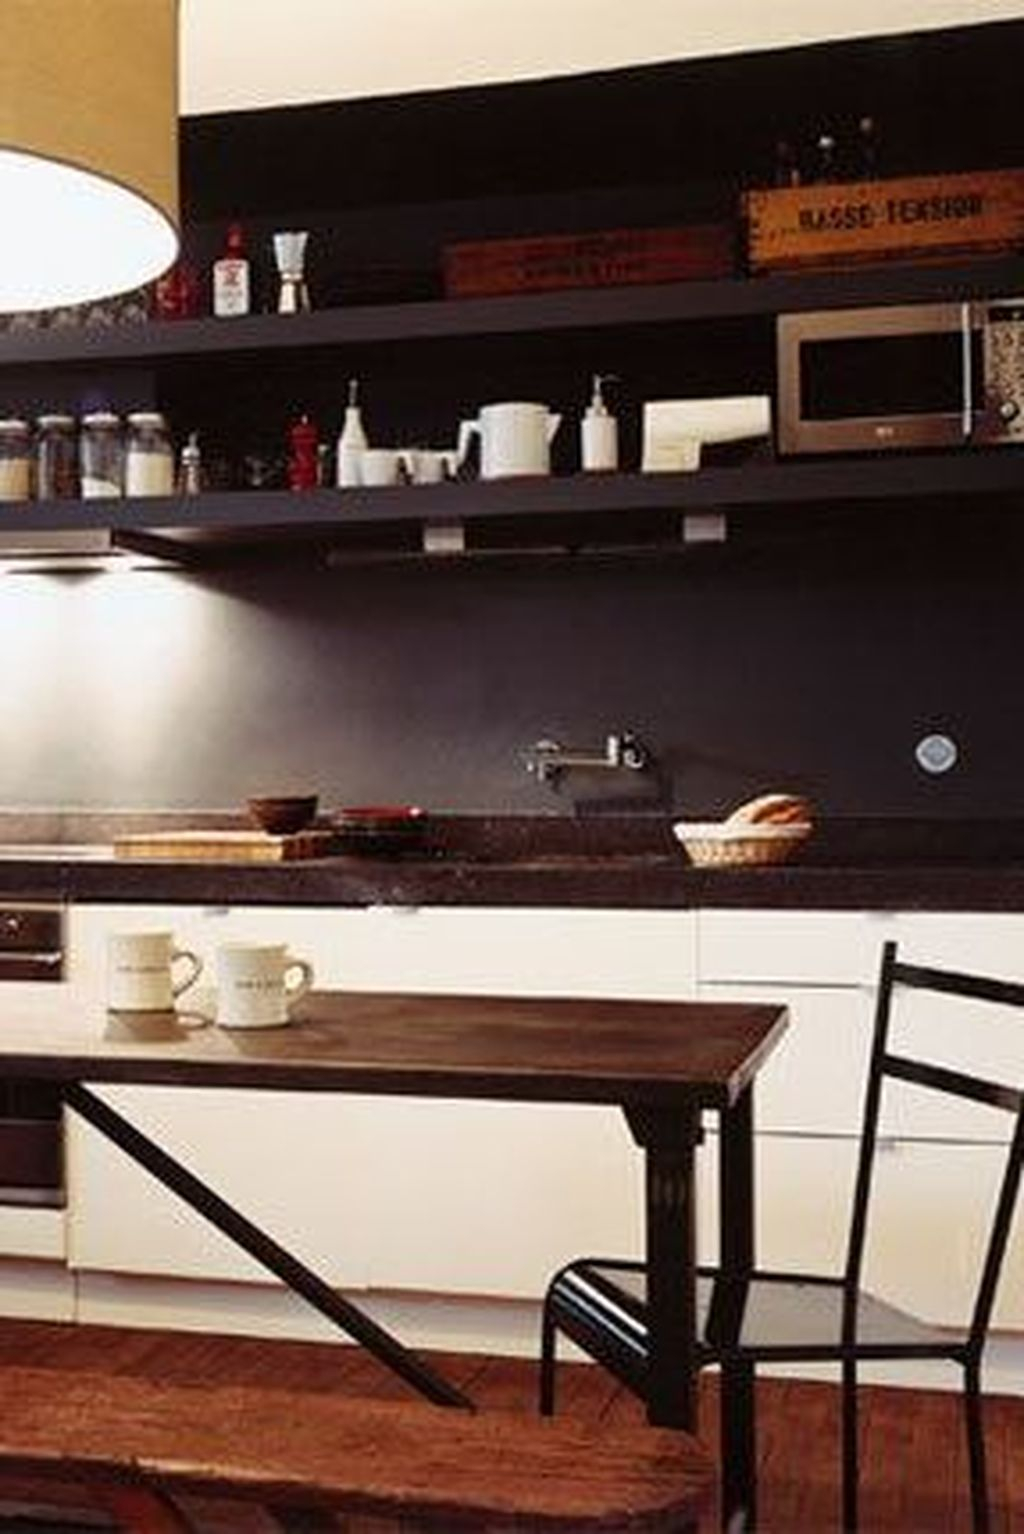 Modern Black Kitchens Design Ideas For Bachelors Pad To Try Asap 36